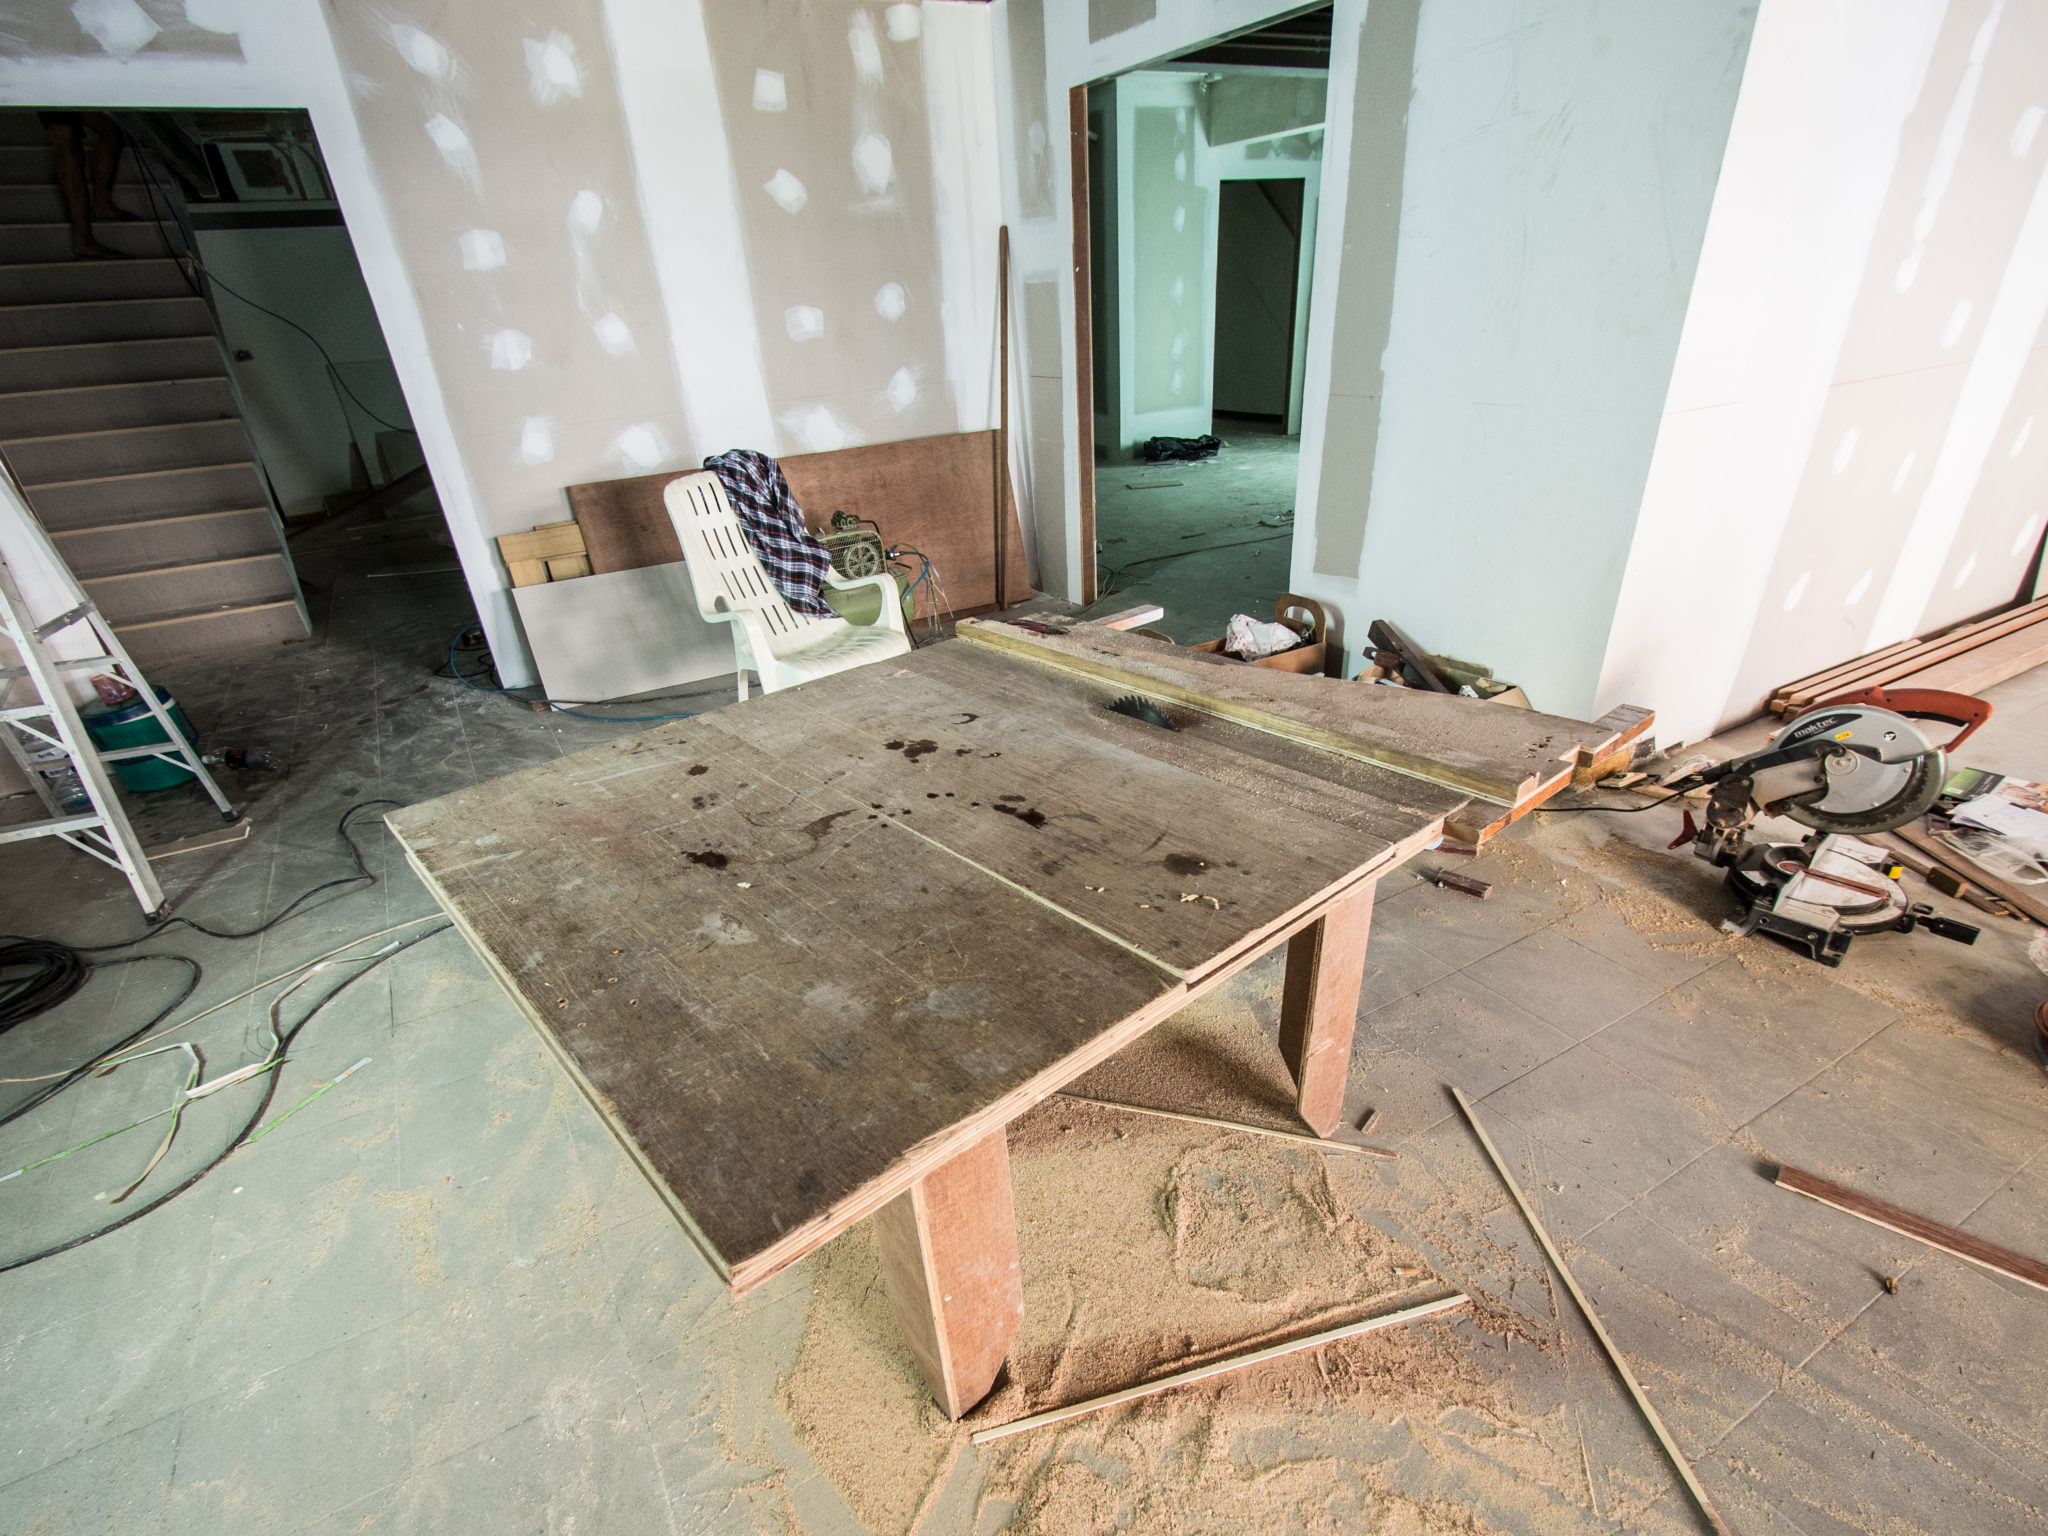 Building improvements can be a losing proposition for landlords at tax time